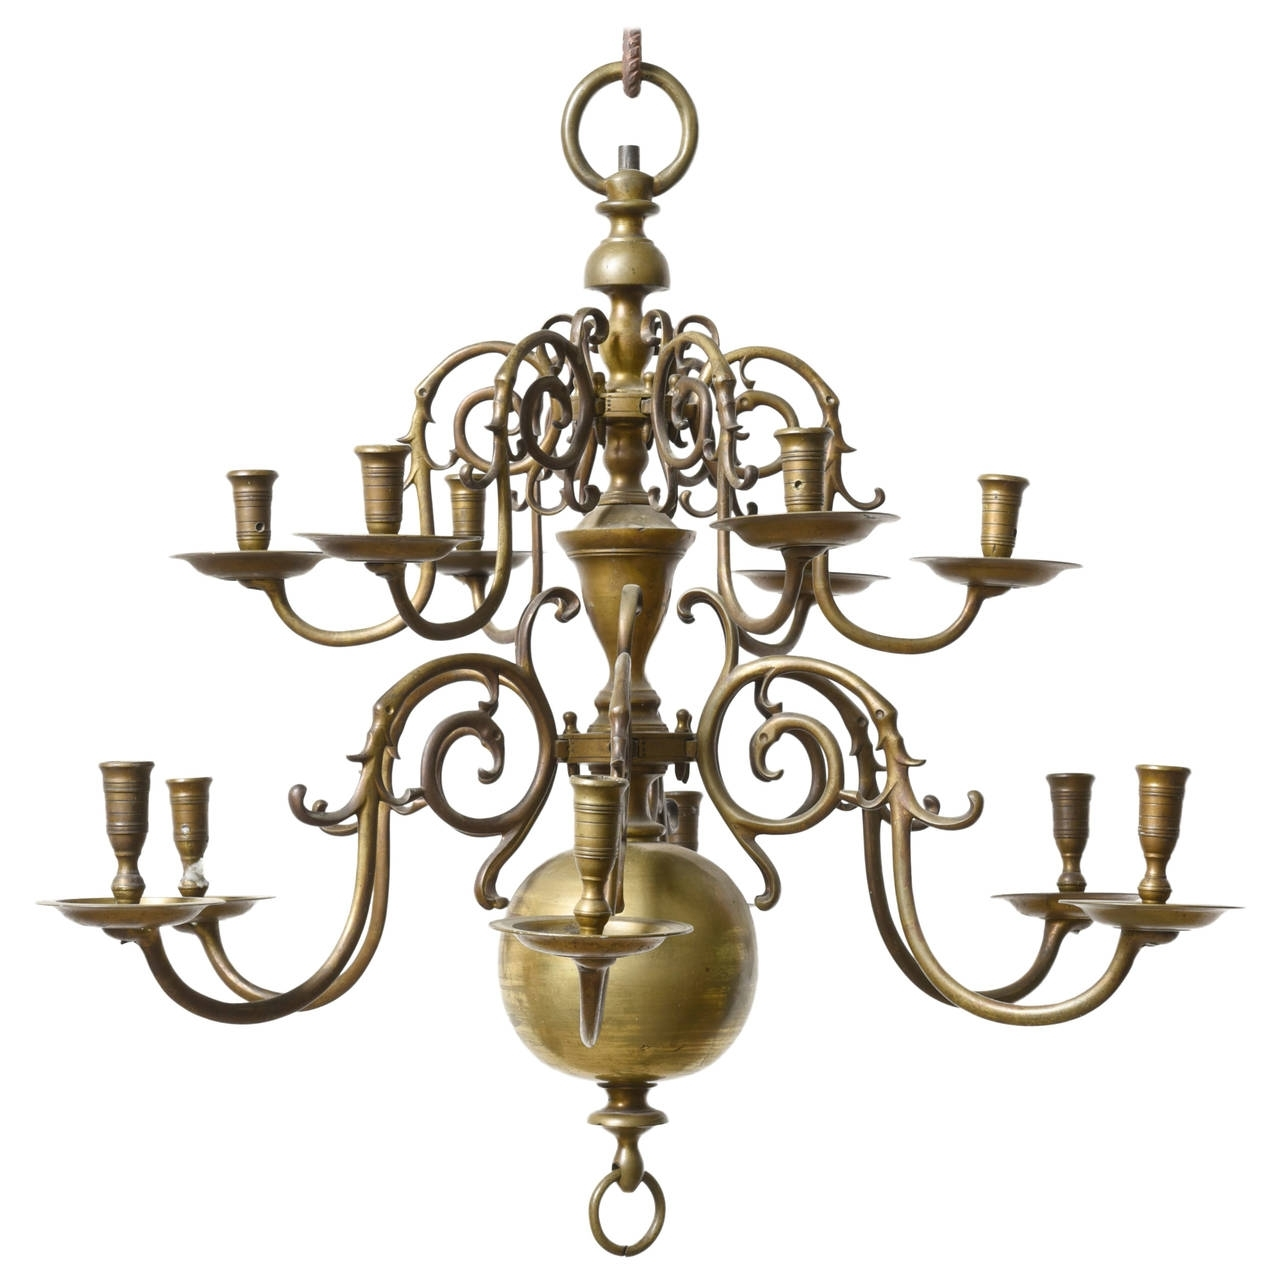 Most Recent Dutch Baroque 18th Century Bronze Two Tier Chandelier For Sale At Intended For Baroque Chandelier (View 2 of 20)